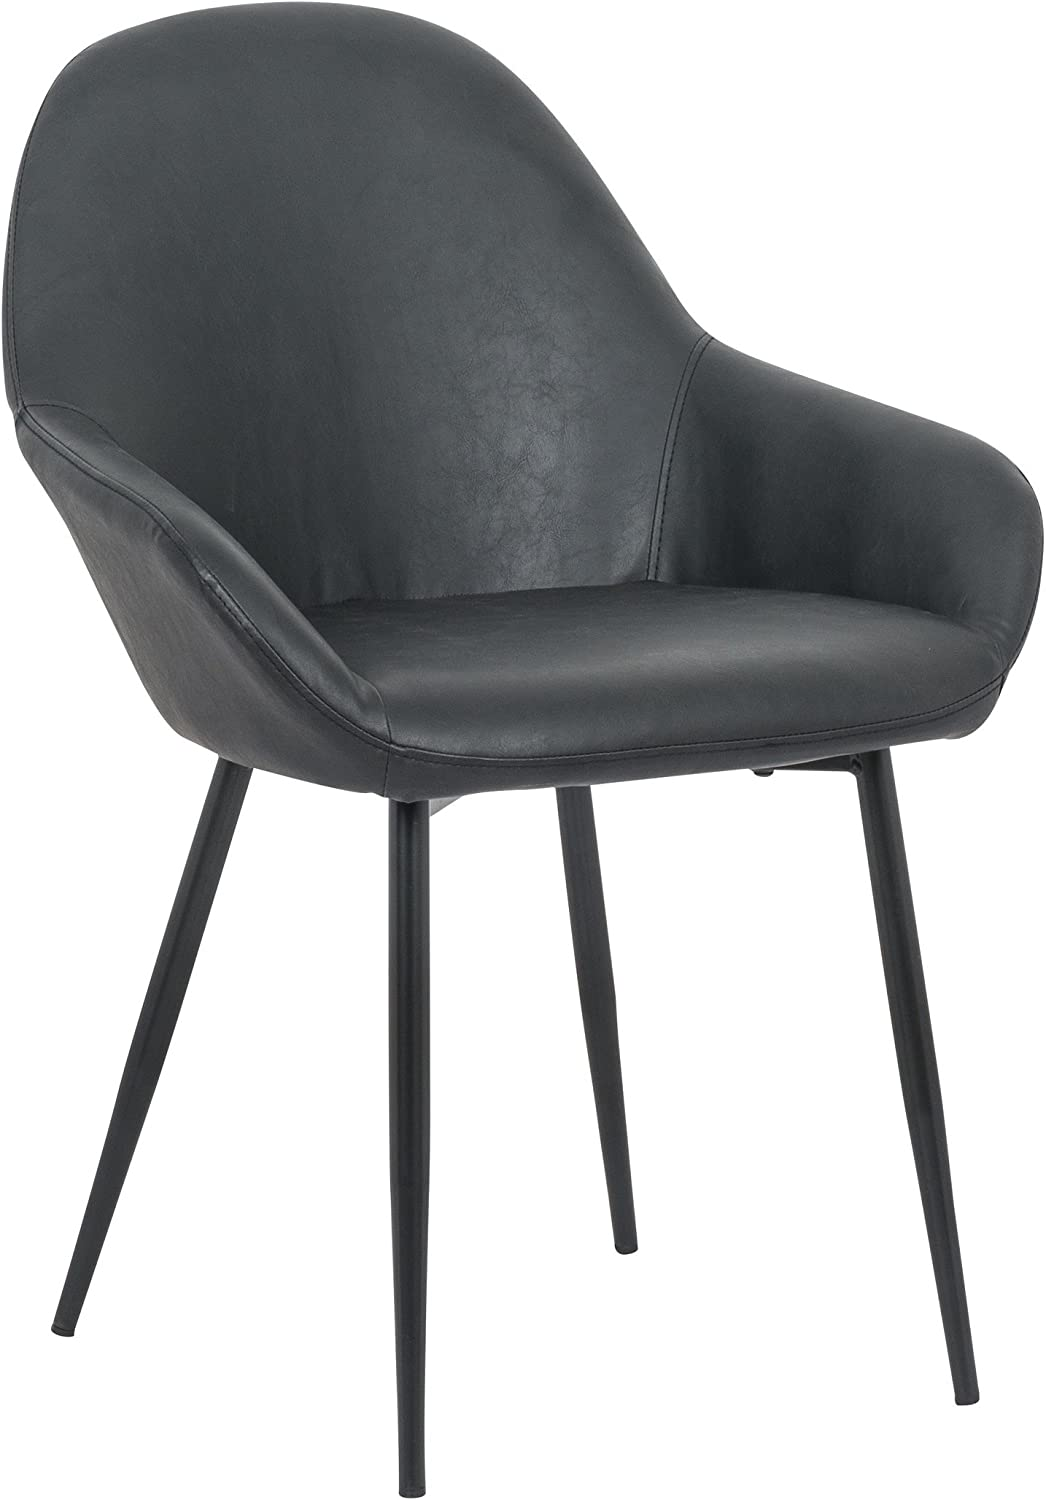 silver Import PDI-HY-7421-BL Clap Style Chair, Black